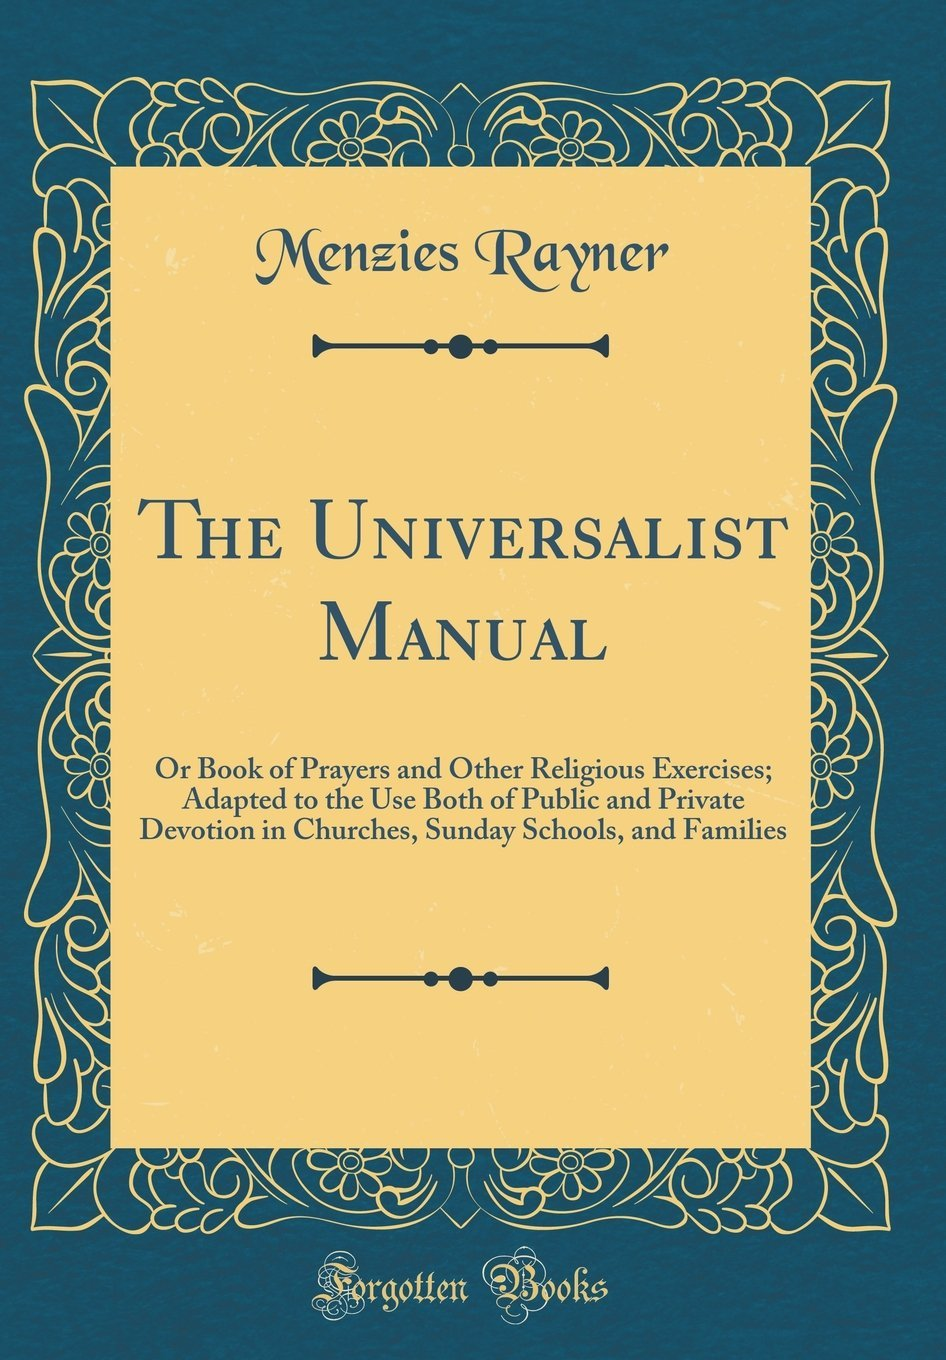 Download The Universalist Manual: Or Book of Prayers and Other Religious Exercises; Adapted to the Use Both of Public and Private Devotion in Churches, Sunday Schools, and Families (Classic Reprint) ebook